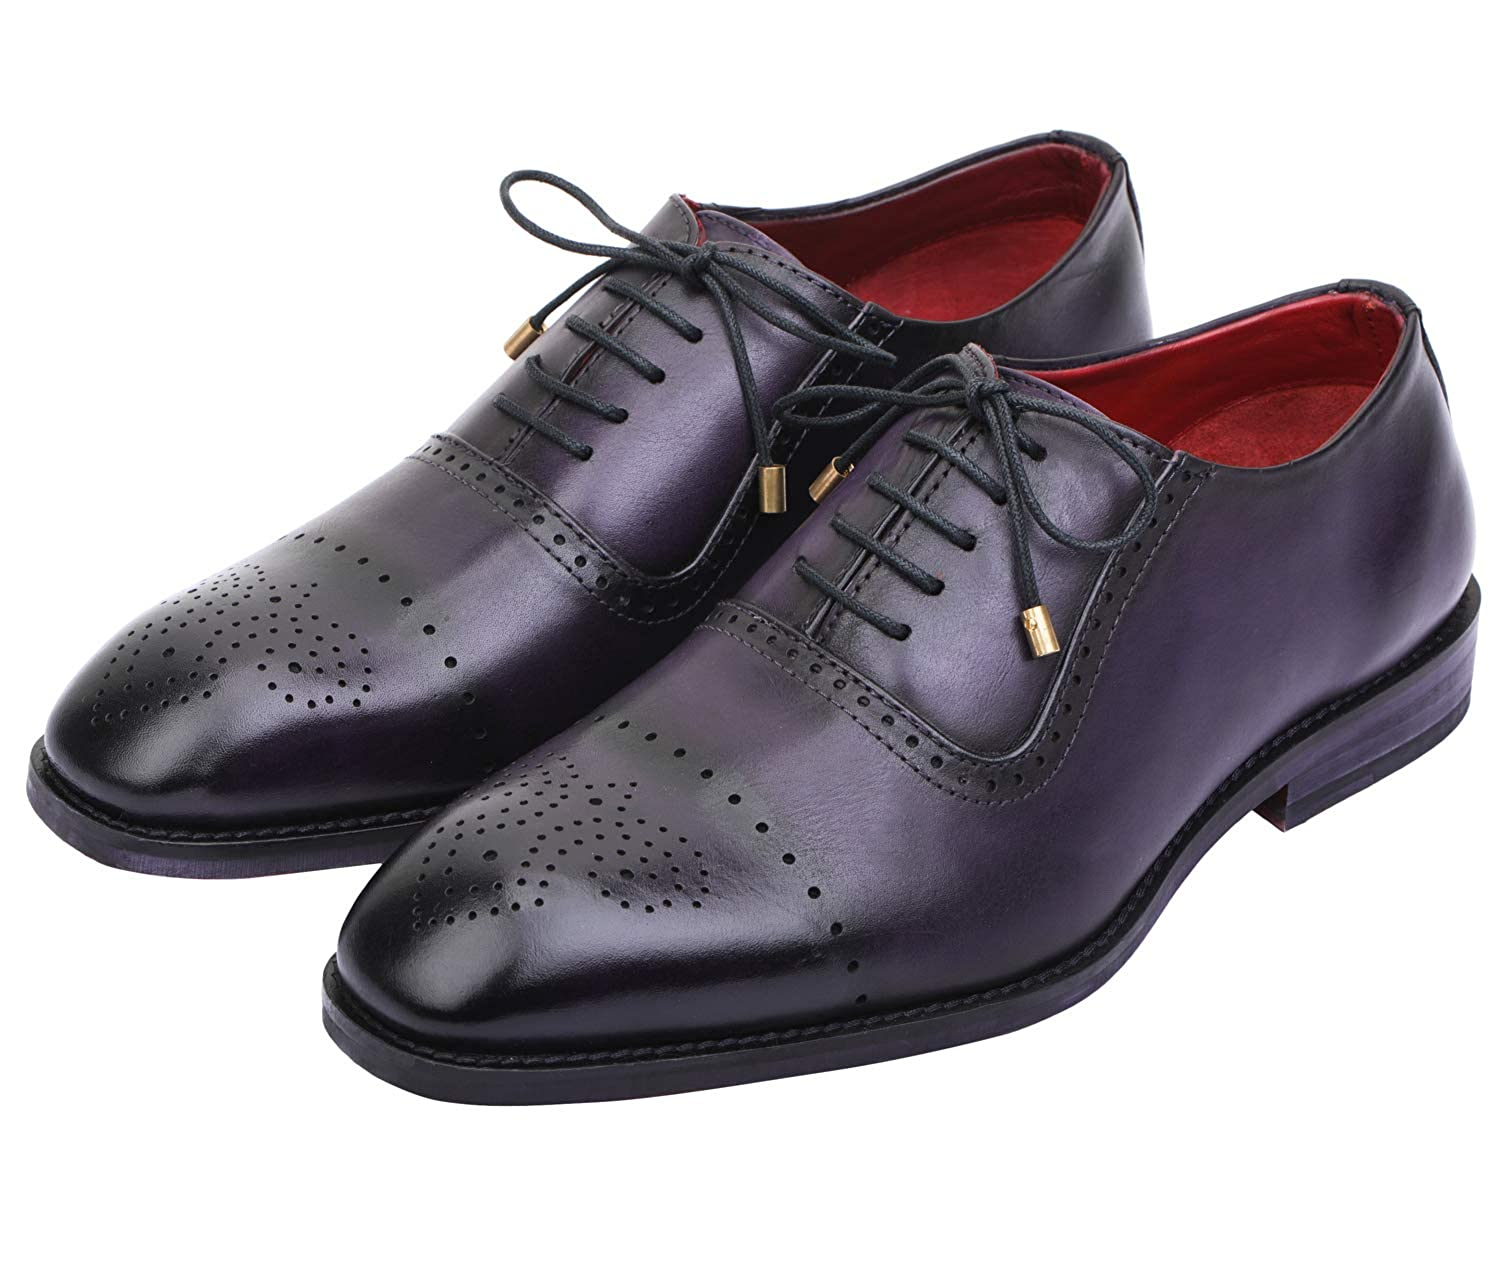 Purple Lethato Wingtip Brogue Oxford Handcrafted Men's Genuine Leather Lace up Dress shoes